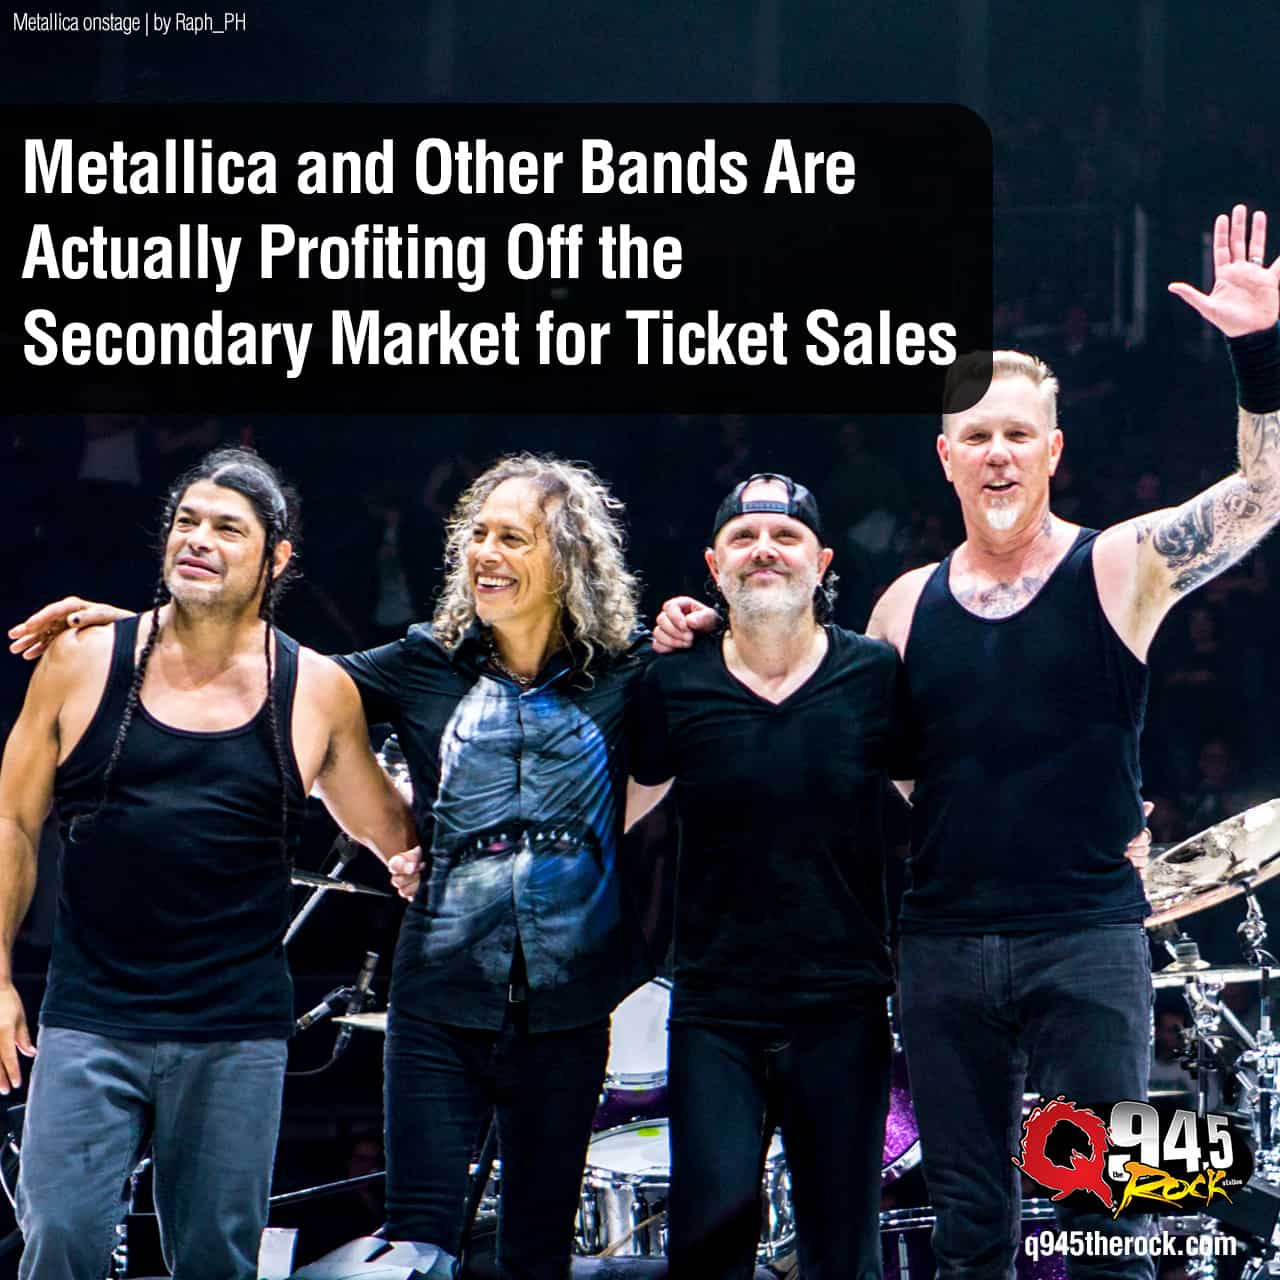 Metallica and Other Bands Are Actually Profiting Off the Secondary Market for Ticket Sales